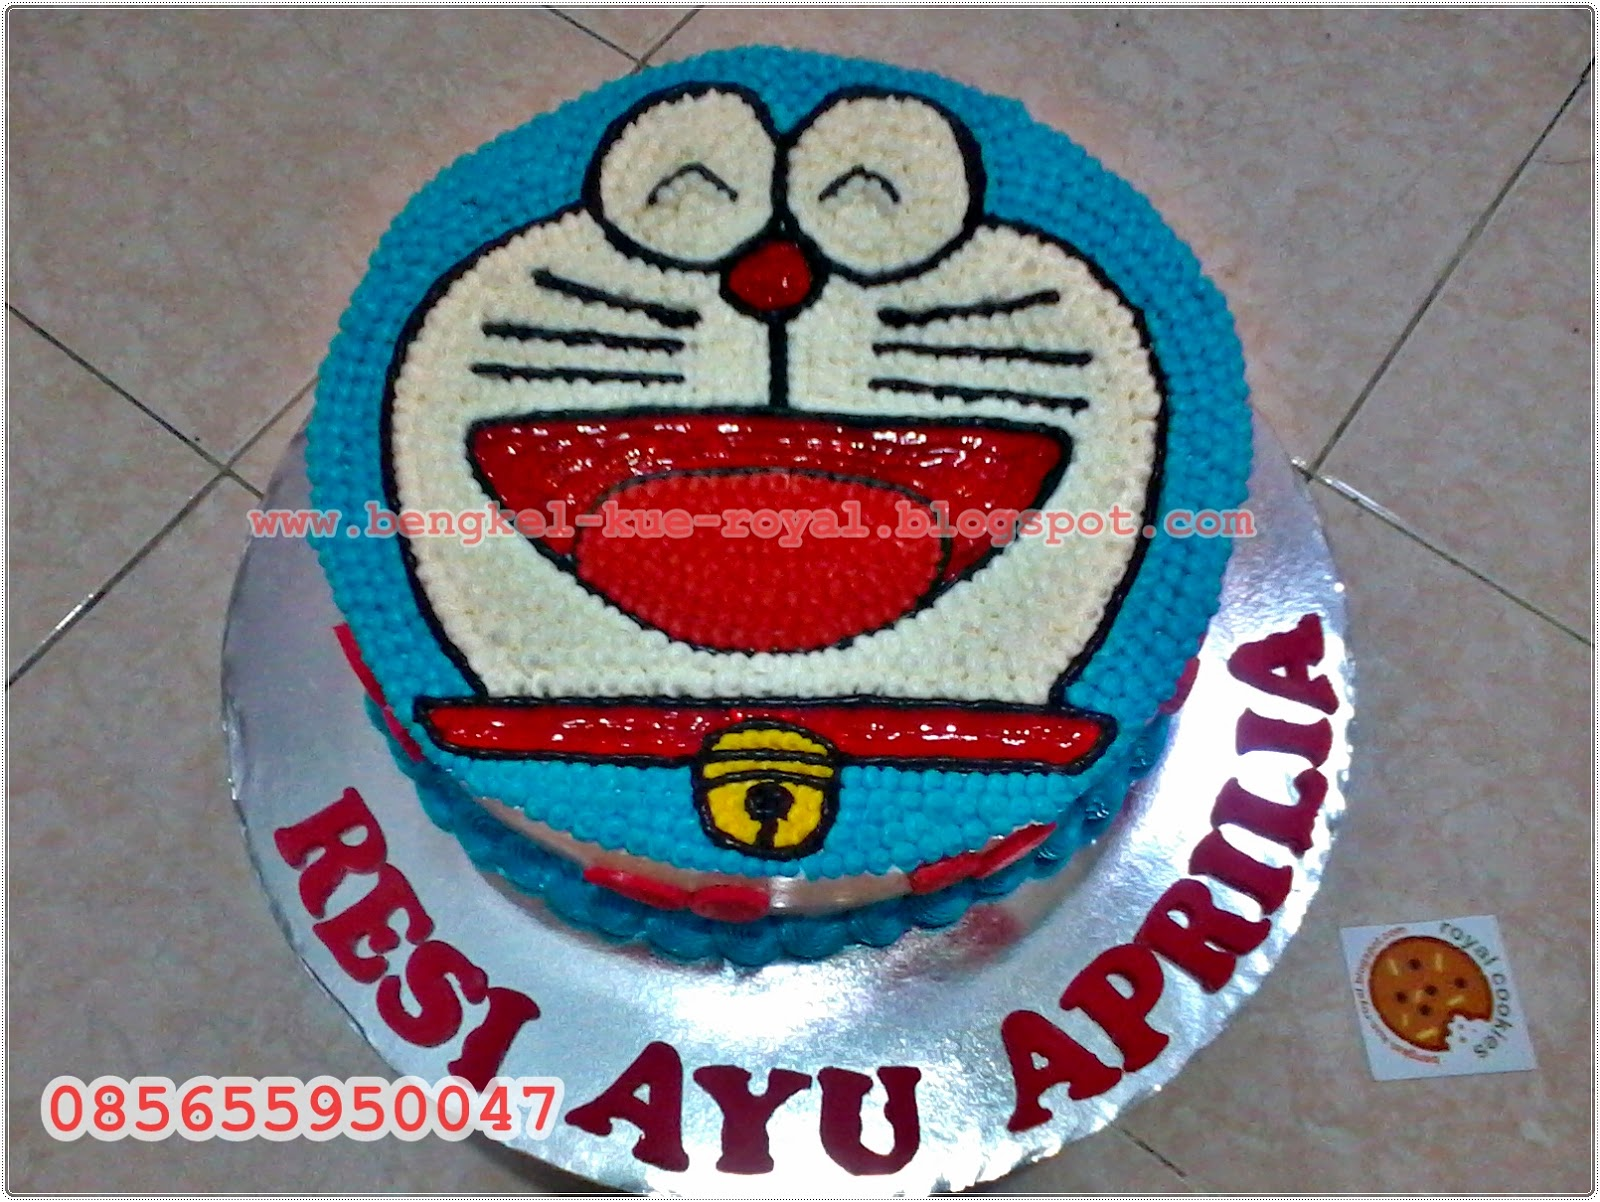 ROYAL COOKIES JEMBER: Doraemon Birthday Cake - mb Echy Jember